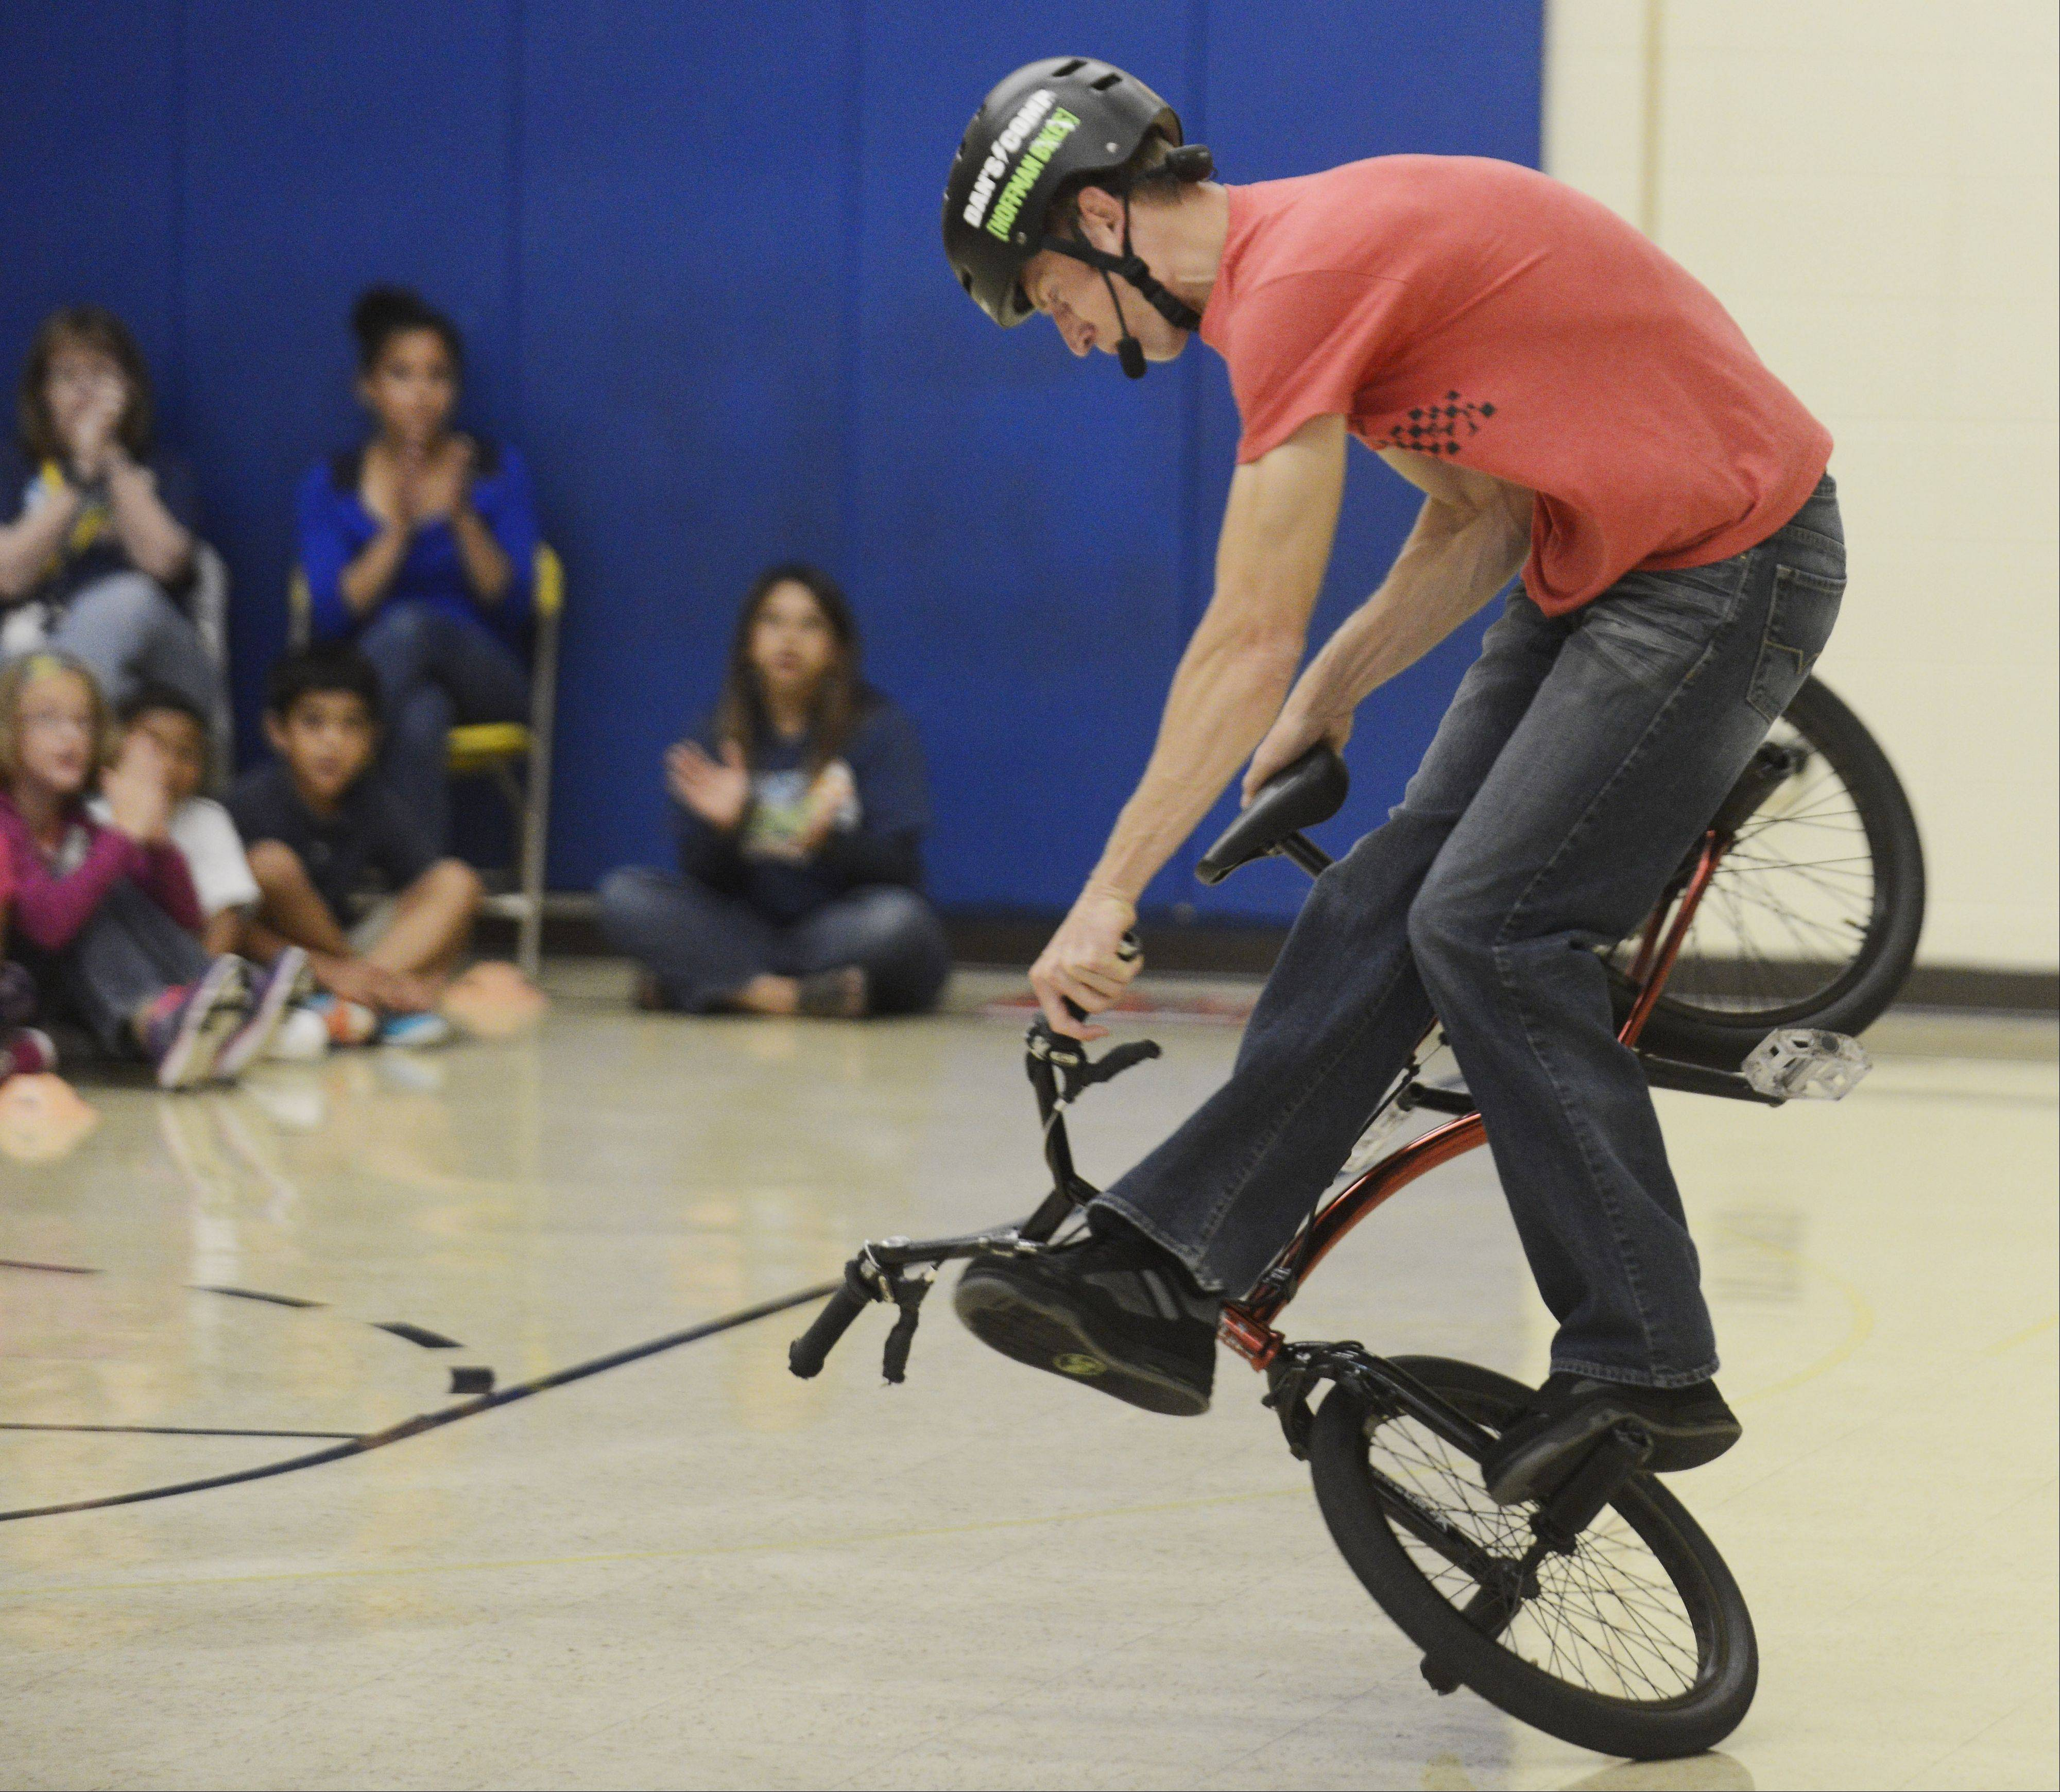 America's Got Talent semifinalist Matt Wilhelm performs stunts on his BMX bike for an assembly at Horizon Elementary School in Hanover Park, while talking to the students about bullying, perseverance, bike safety and character.